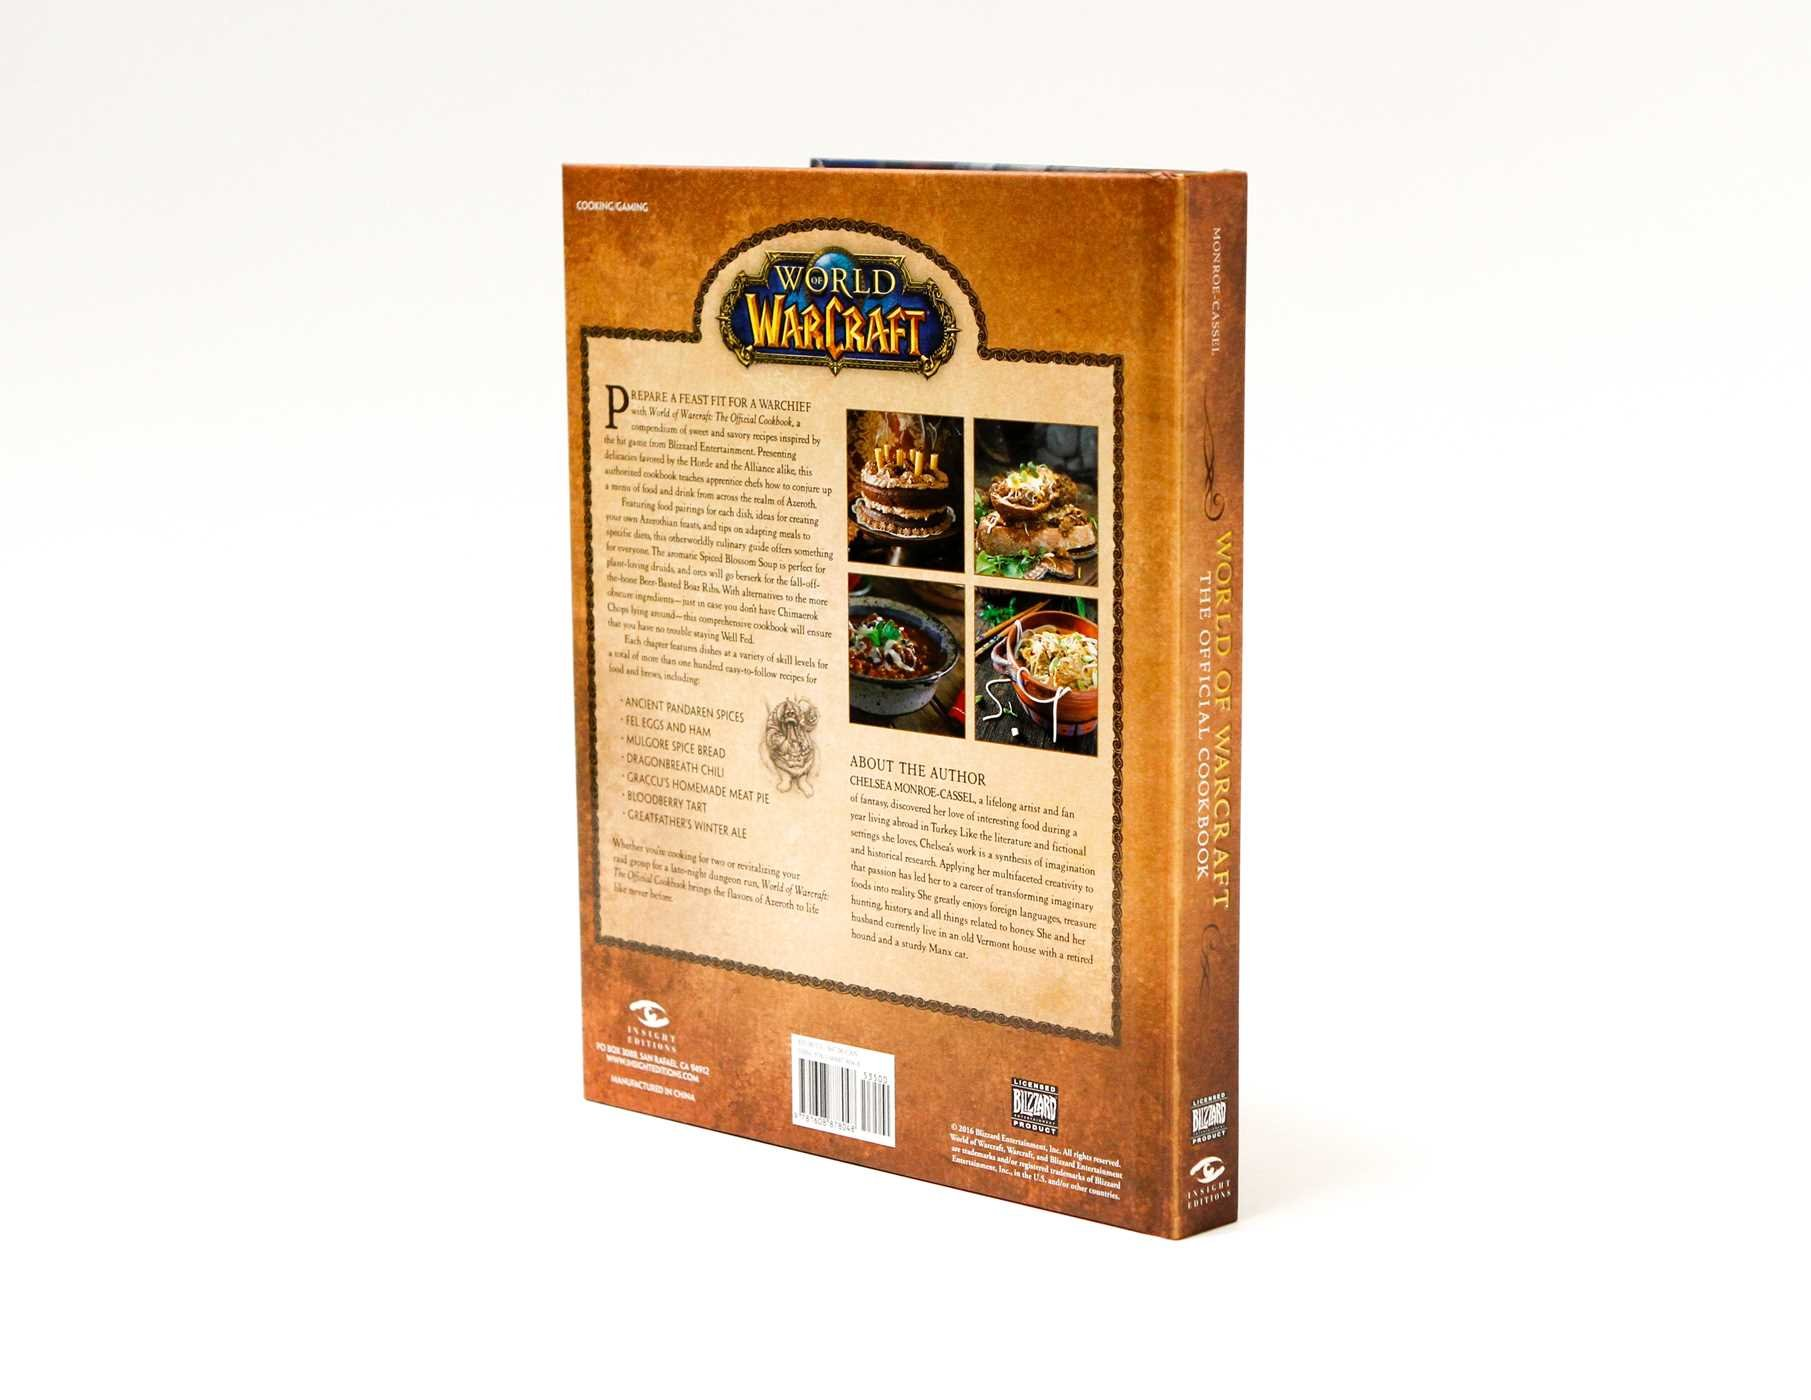 World Of Warcraft The Official Cookbook Chelsea Monroe Cassel